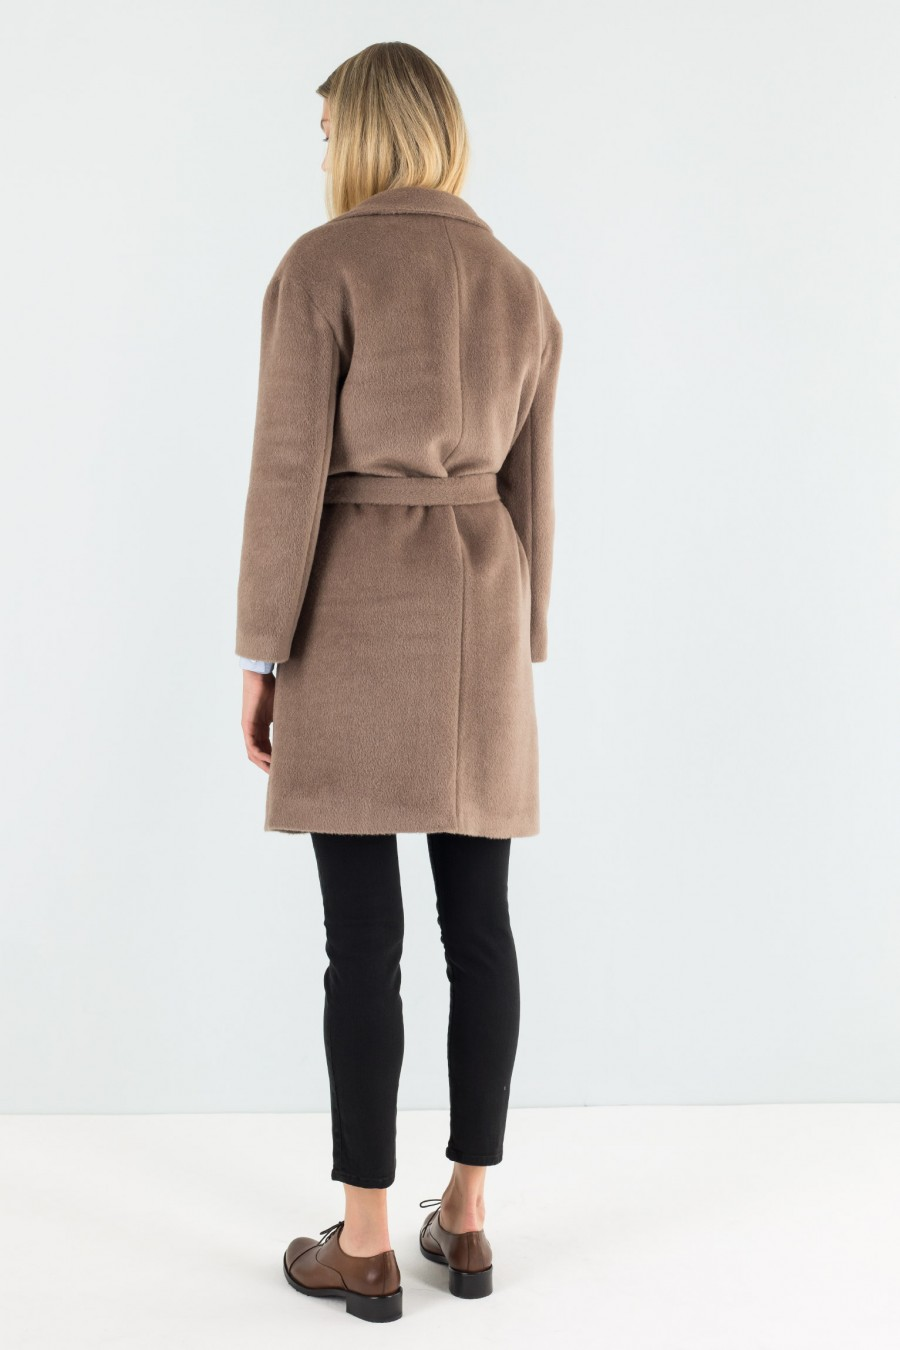 Alpaca fabric and wool camel brown coat